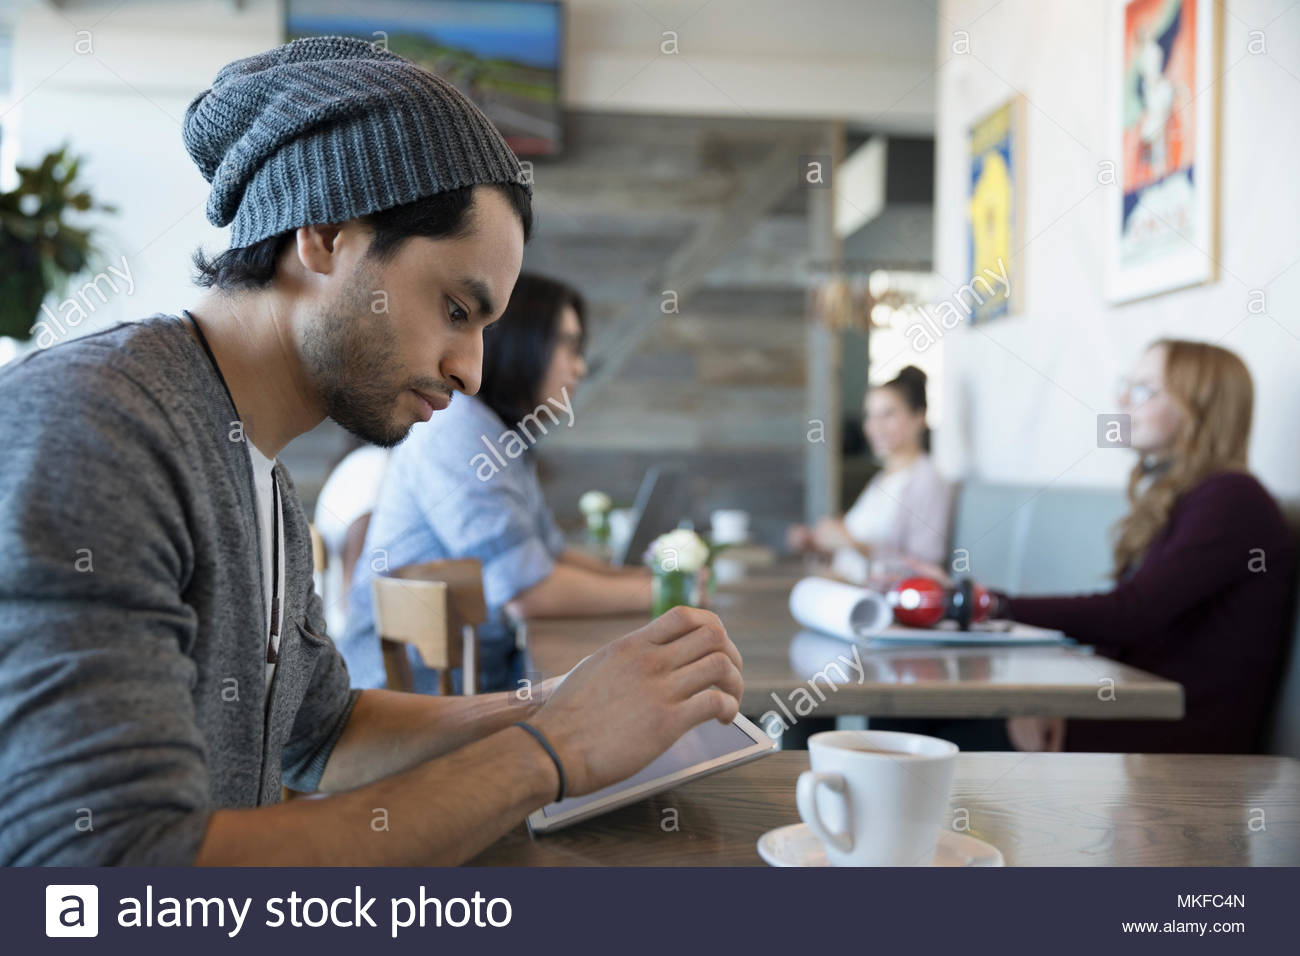 Young man using digital tablet and drinking coffee in cafe - Stock Image